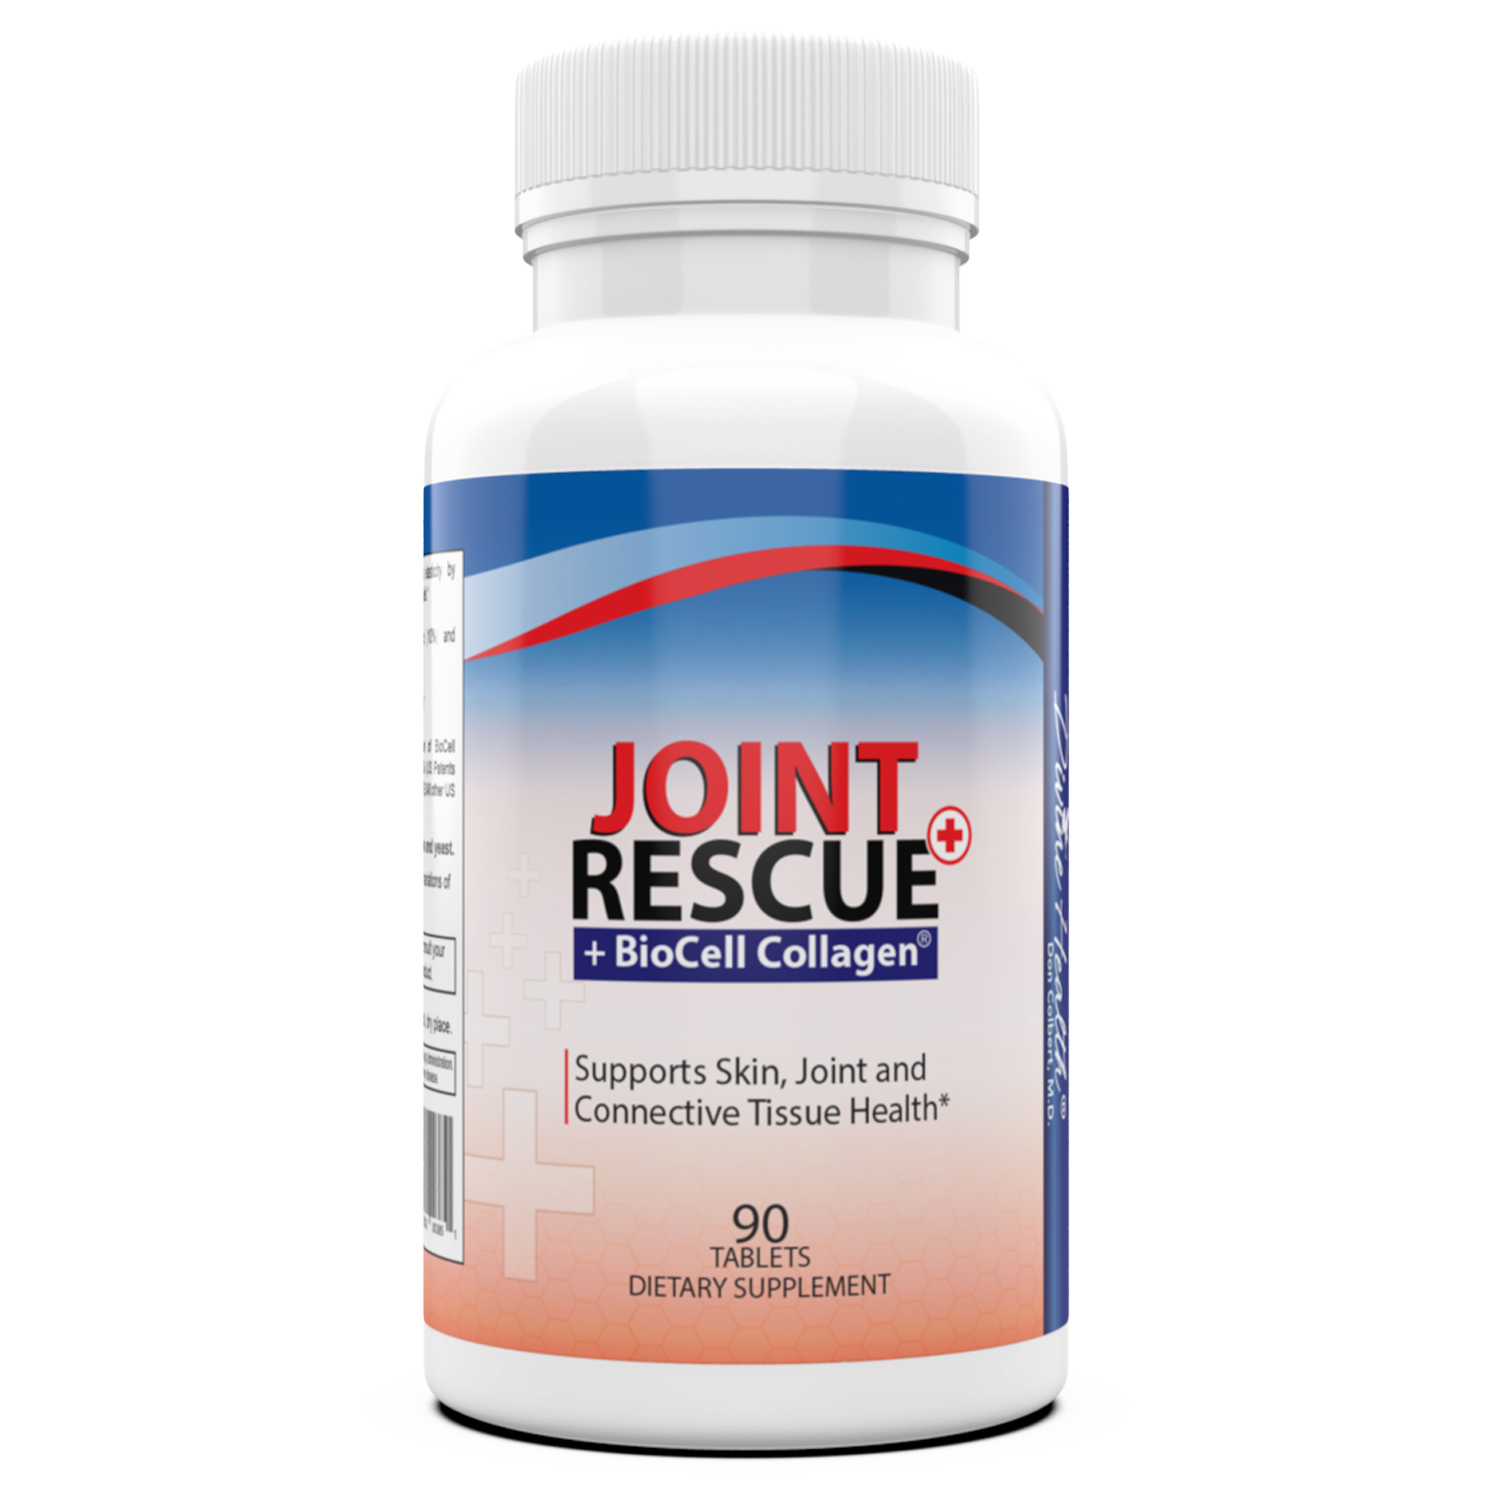 New! Joint Rescue + Biocell® Collagen (Replaces Skin & Joint Formula)